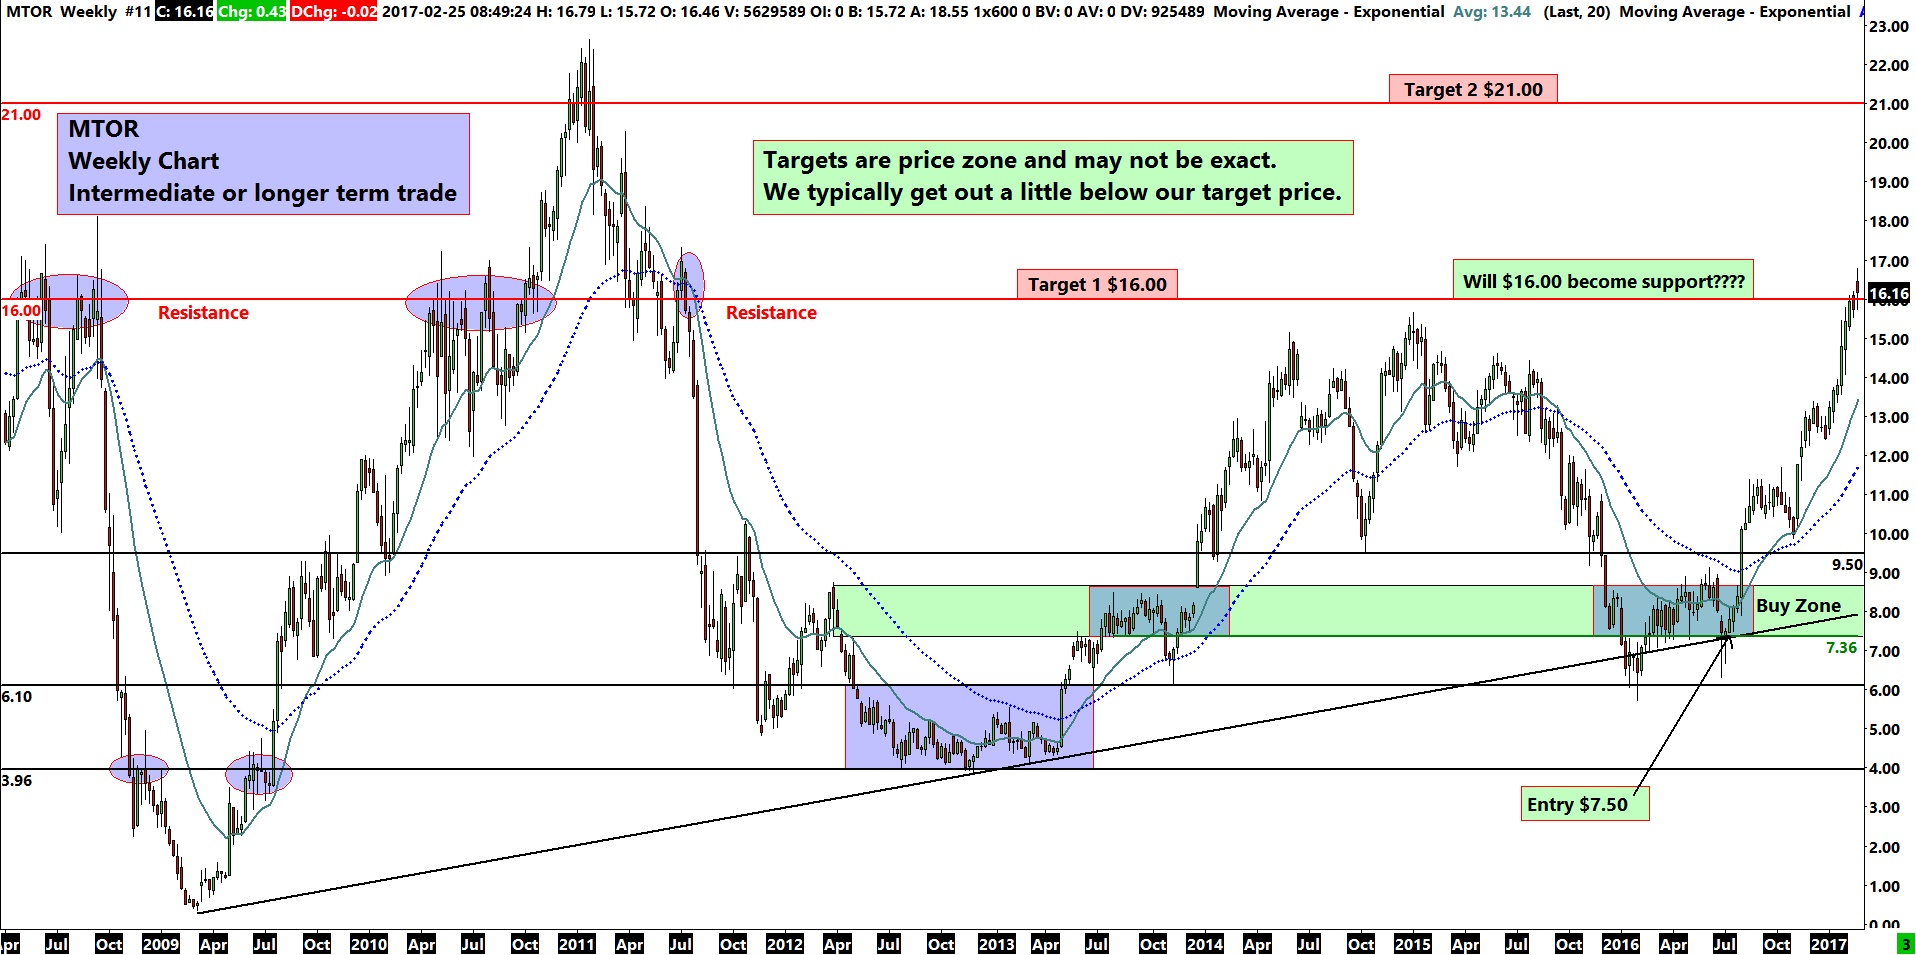 MTOR Weekly Chart -Support, Resistance Trend Strength